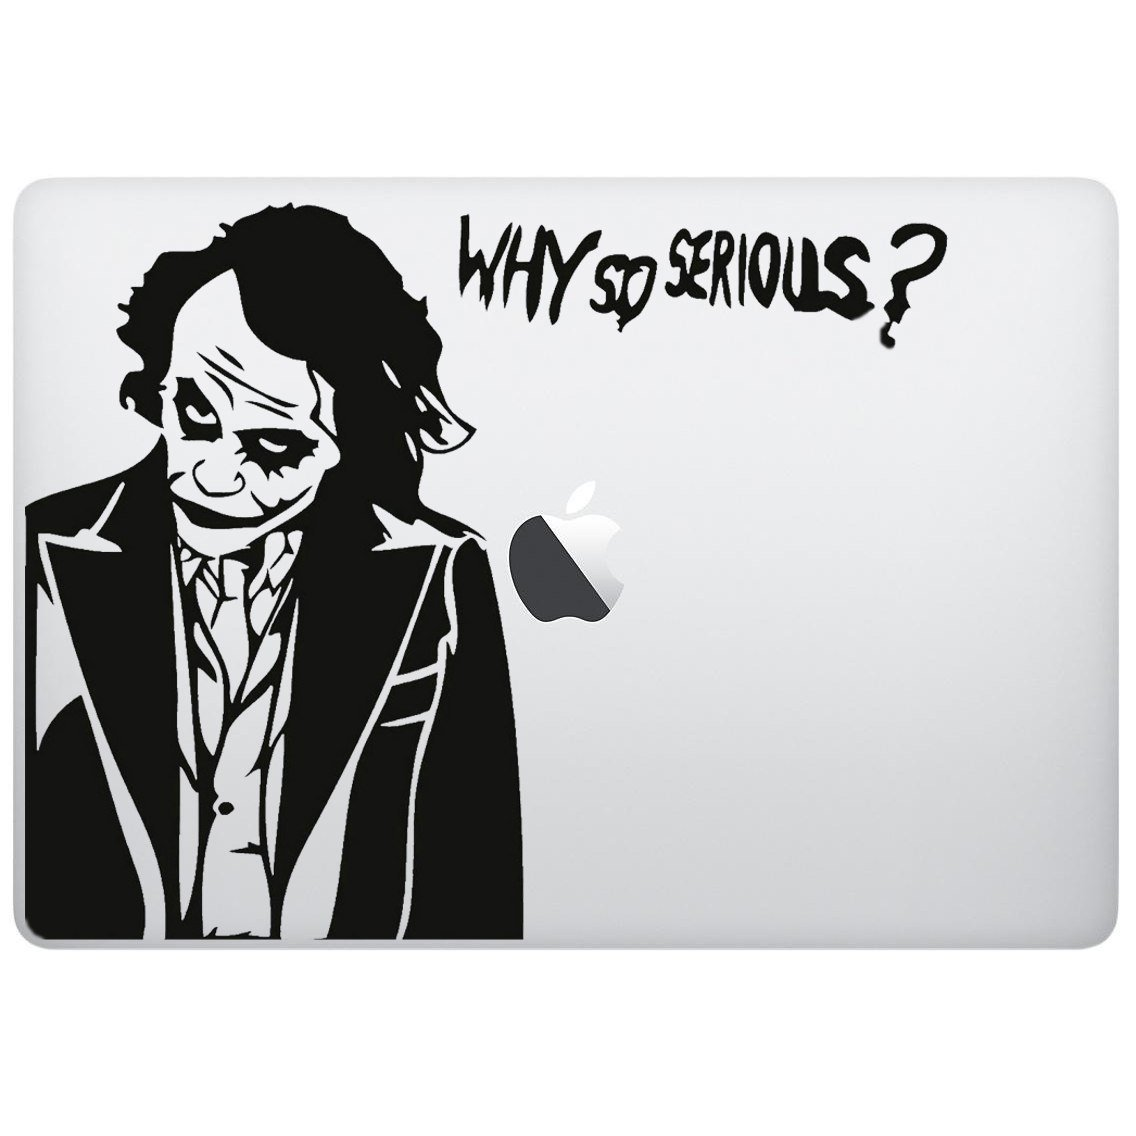 Sticker decal with joker supervillain design computer sticker laptop sticker macbook sticker ipad sticker computer decal laptop decal ipad decal